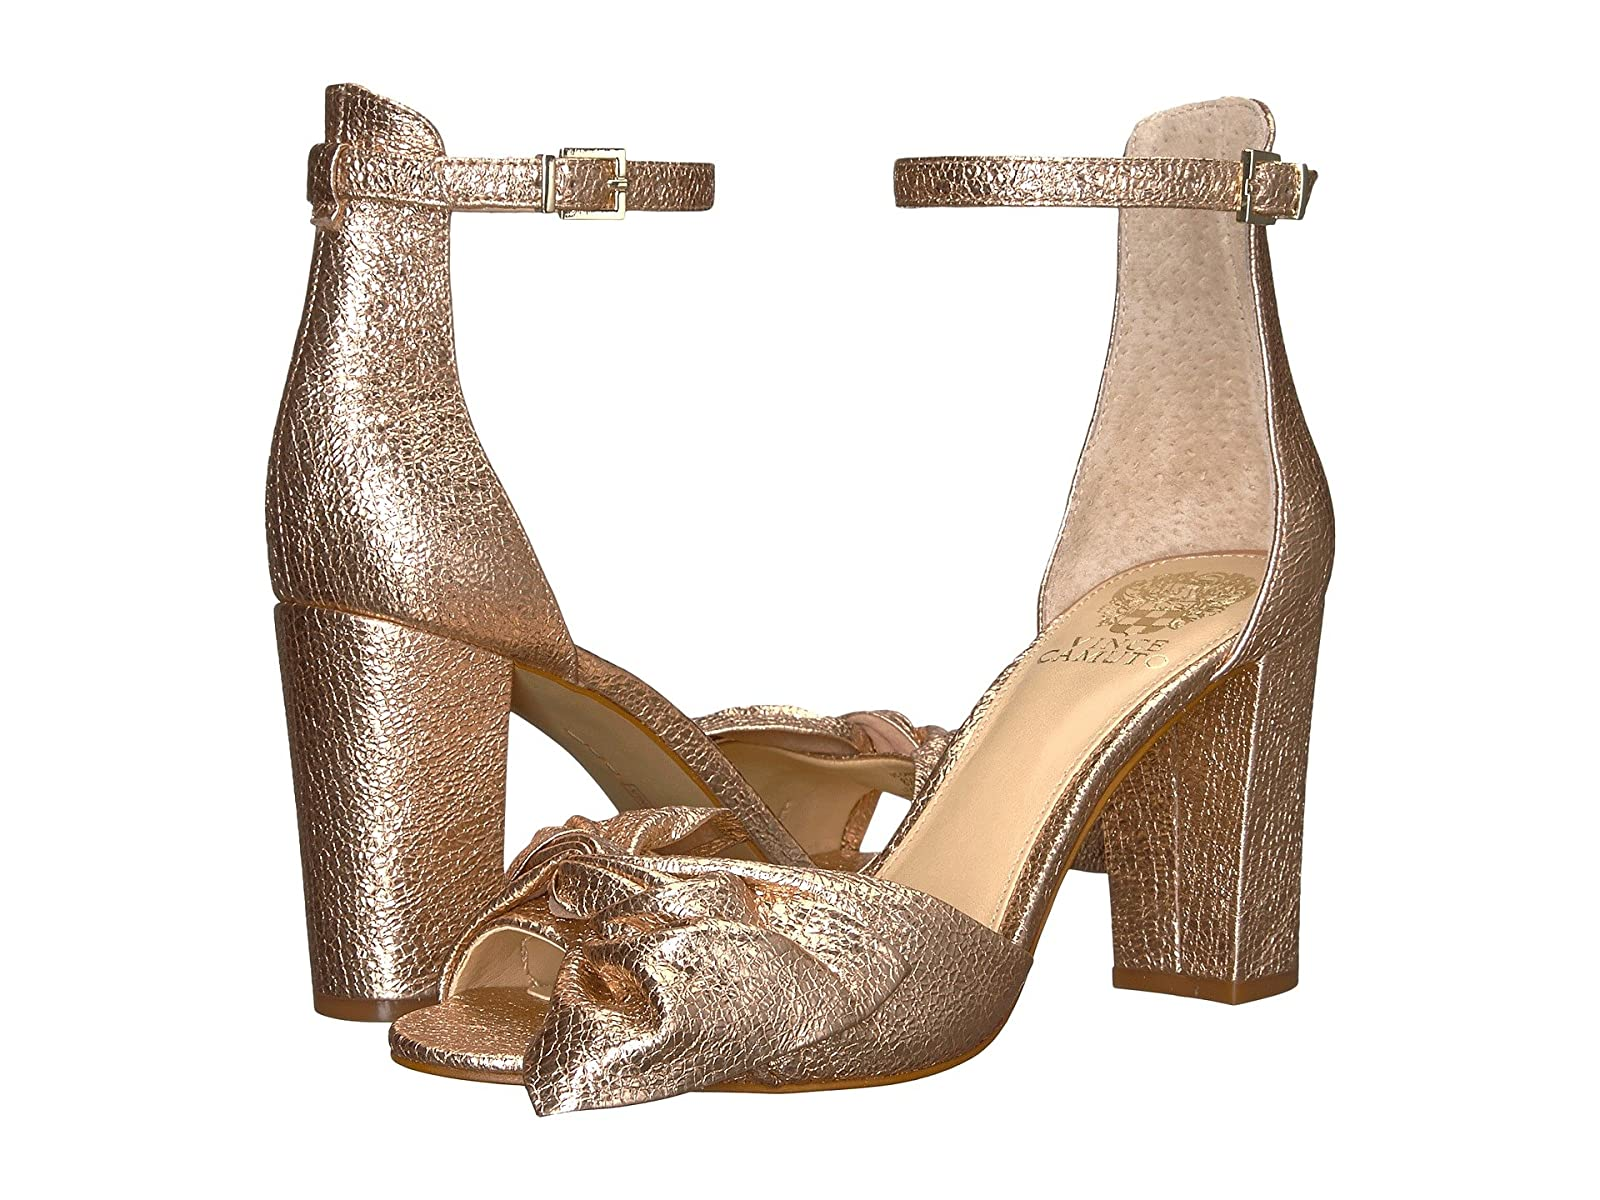 Vince Camuto CarrelenCheap and distinctive eye-catching shoes